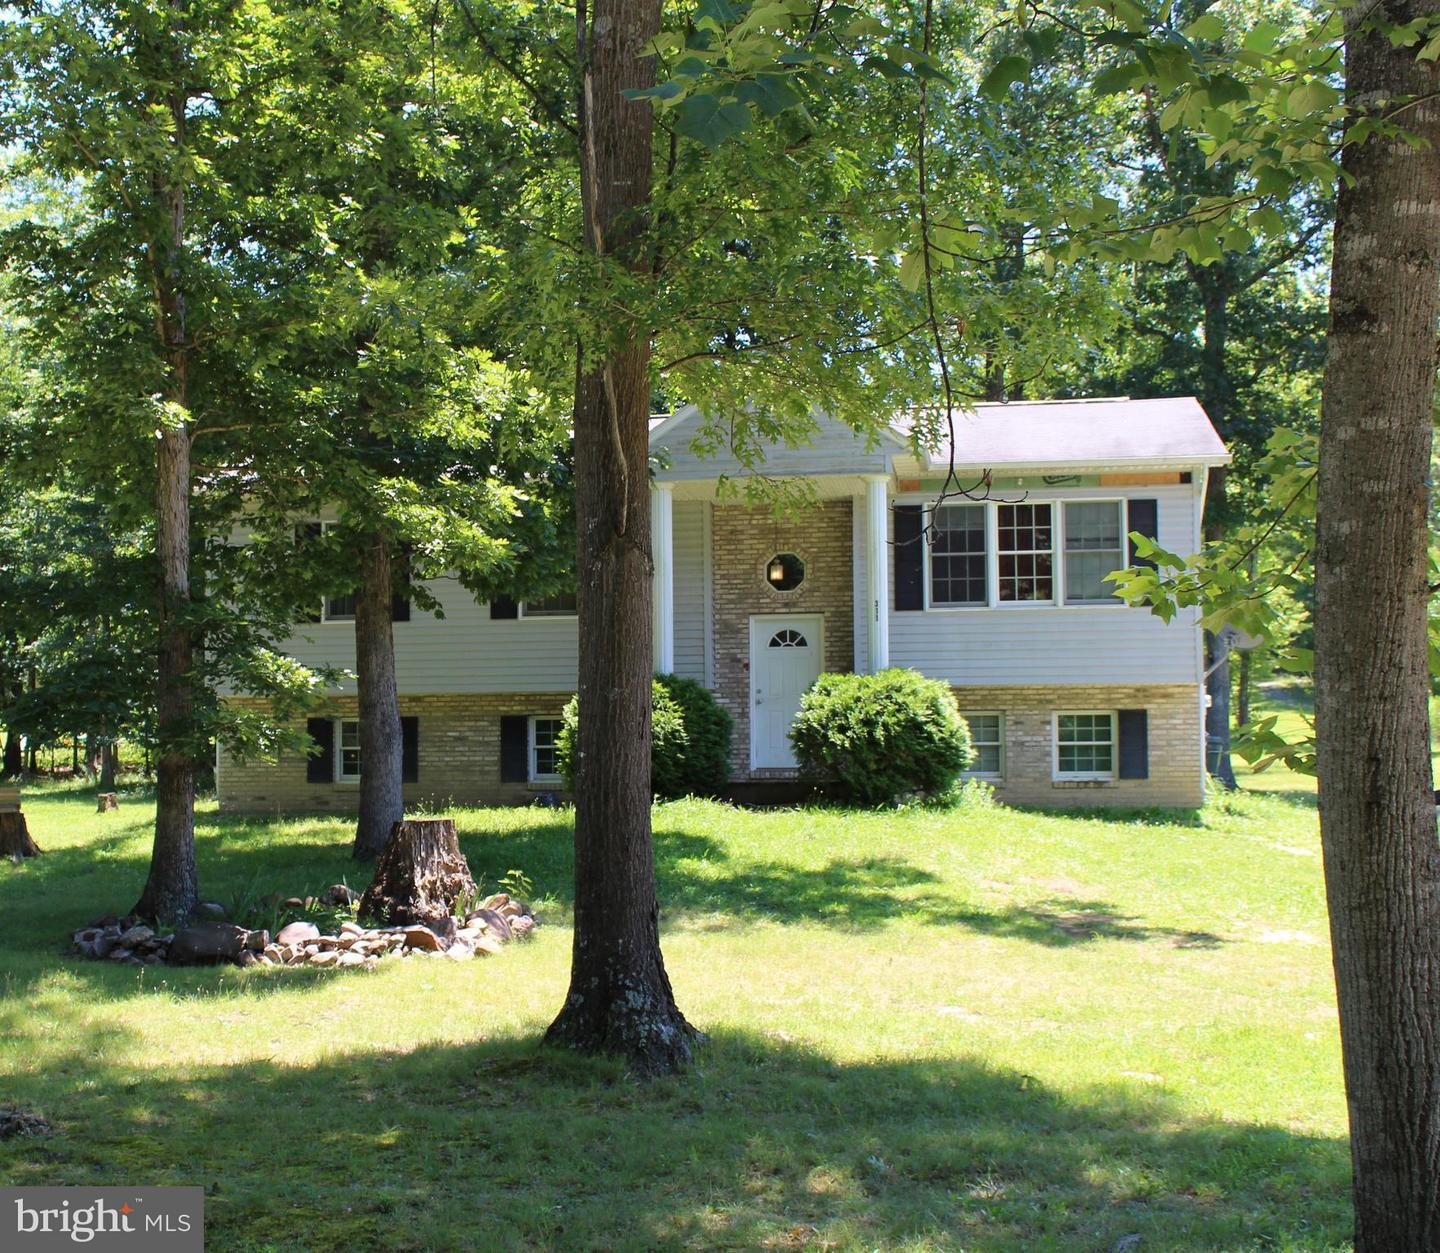 Single Family for Sale at 311 Warden Circle Rd Wardensville, West Virginia 26851 United States